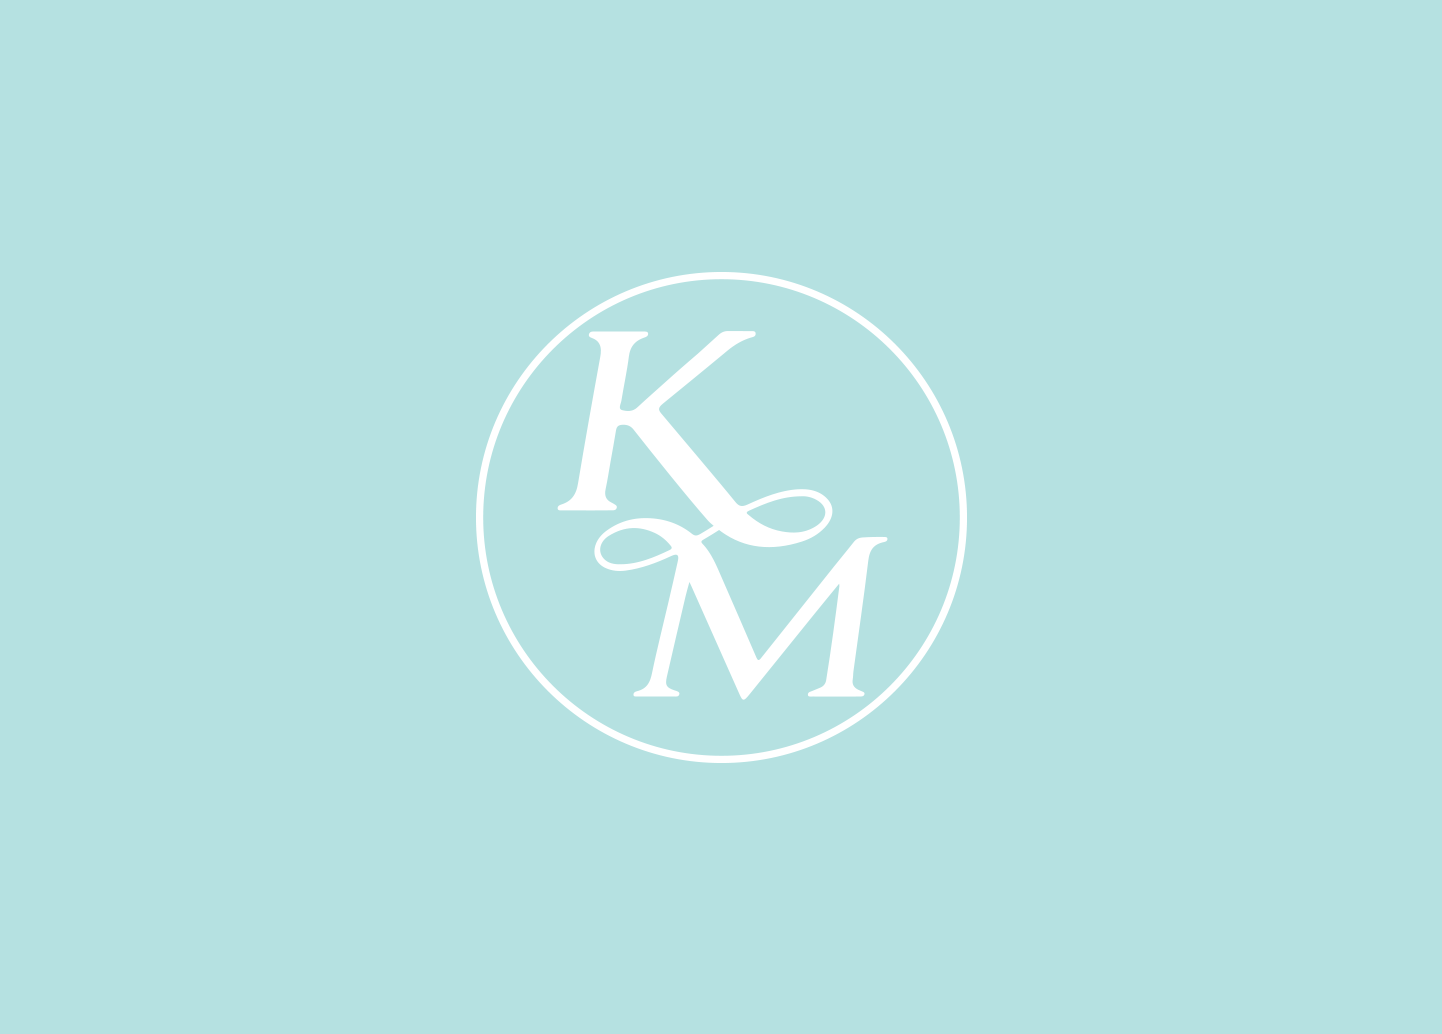 Km Monogram On Behance